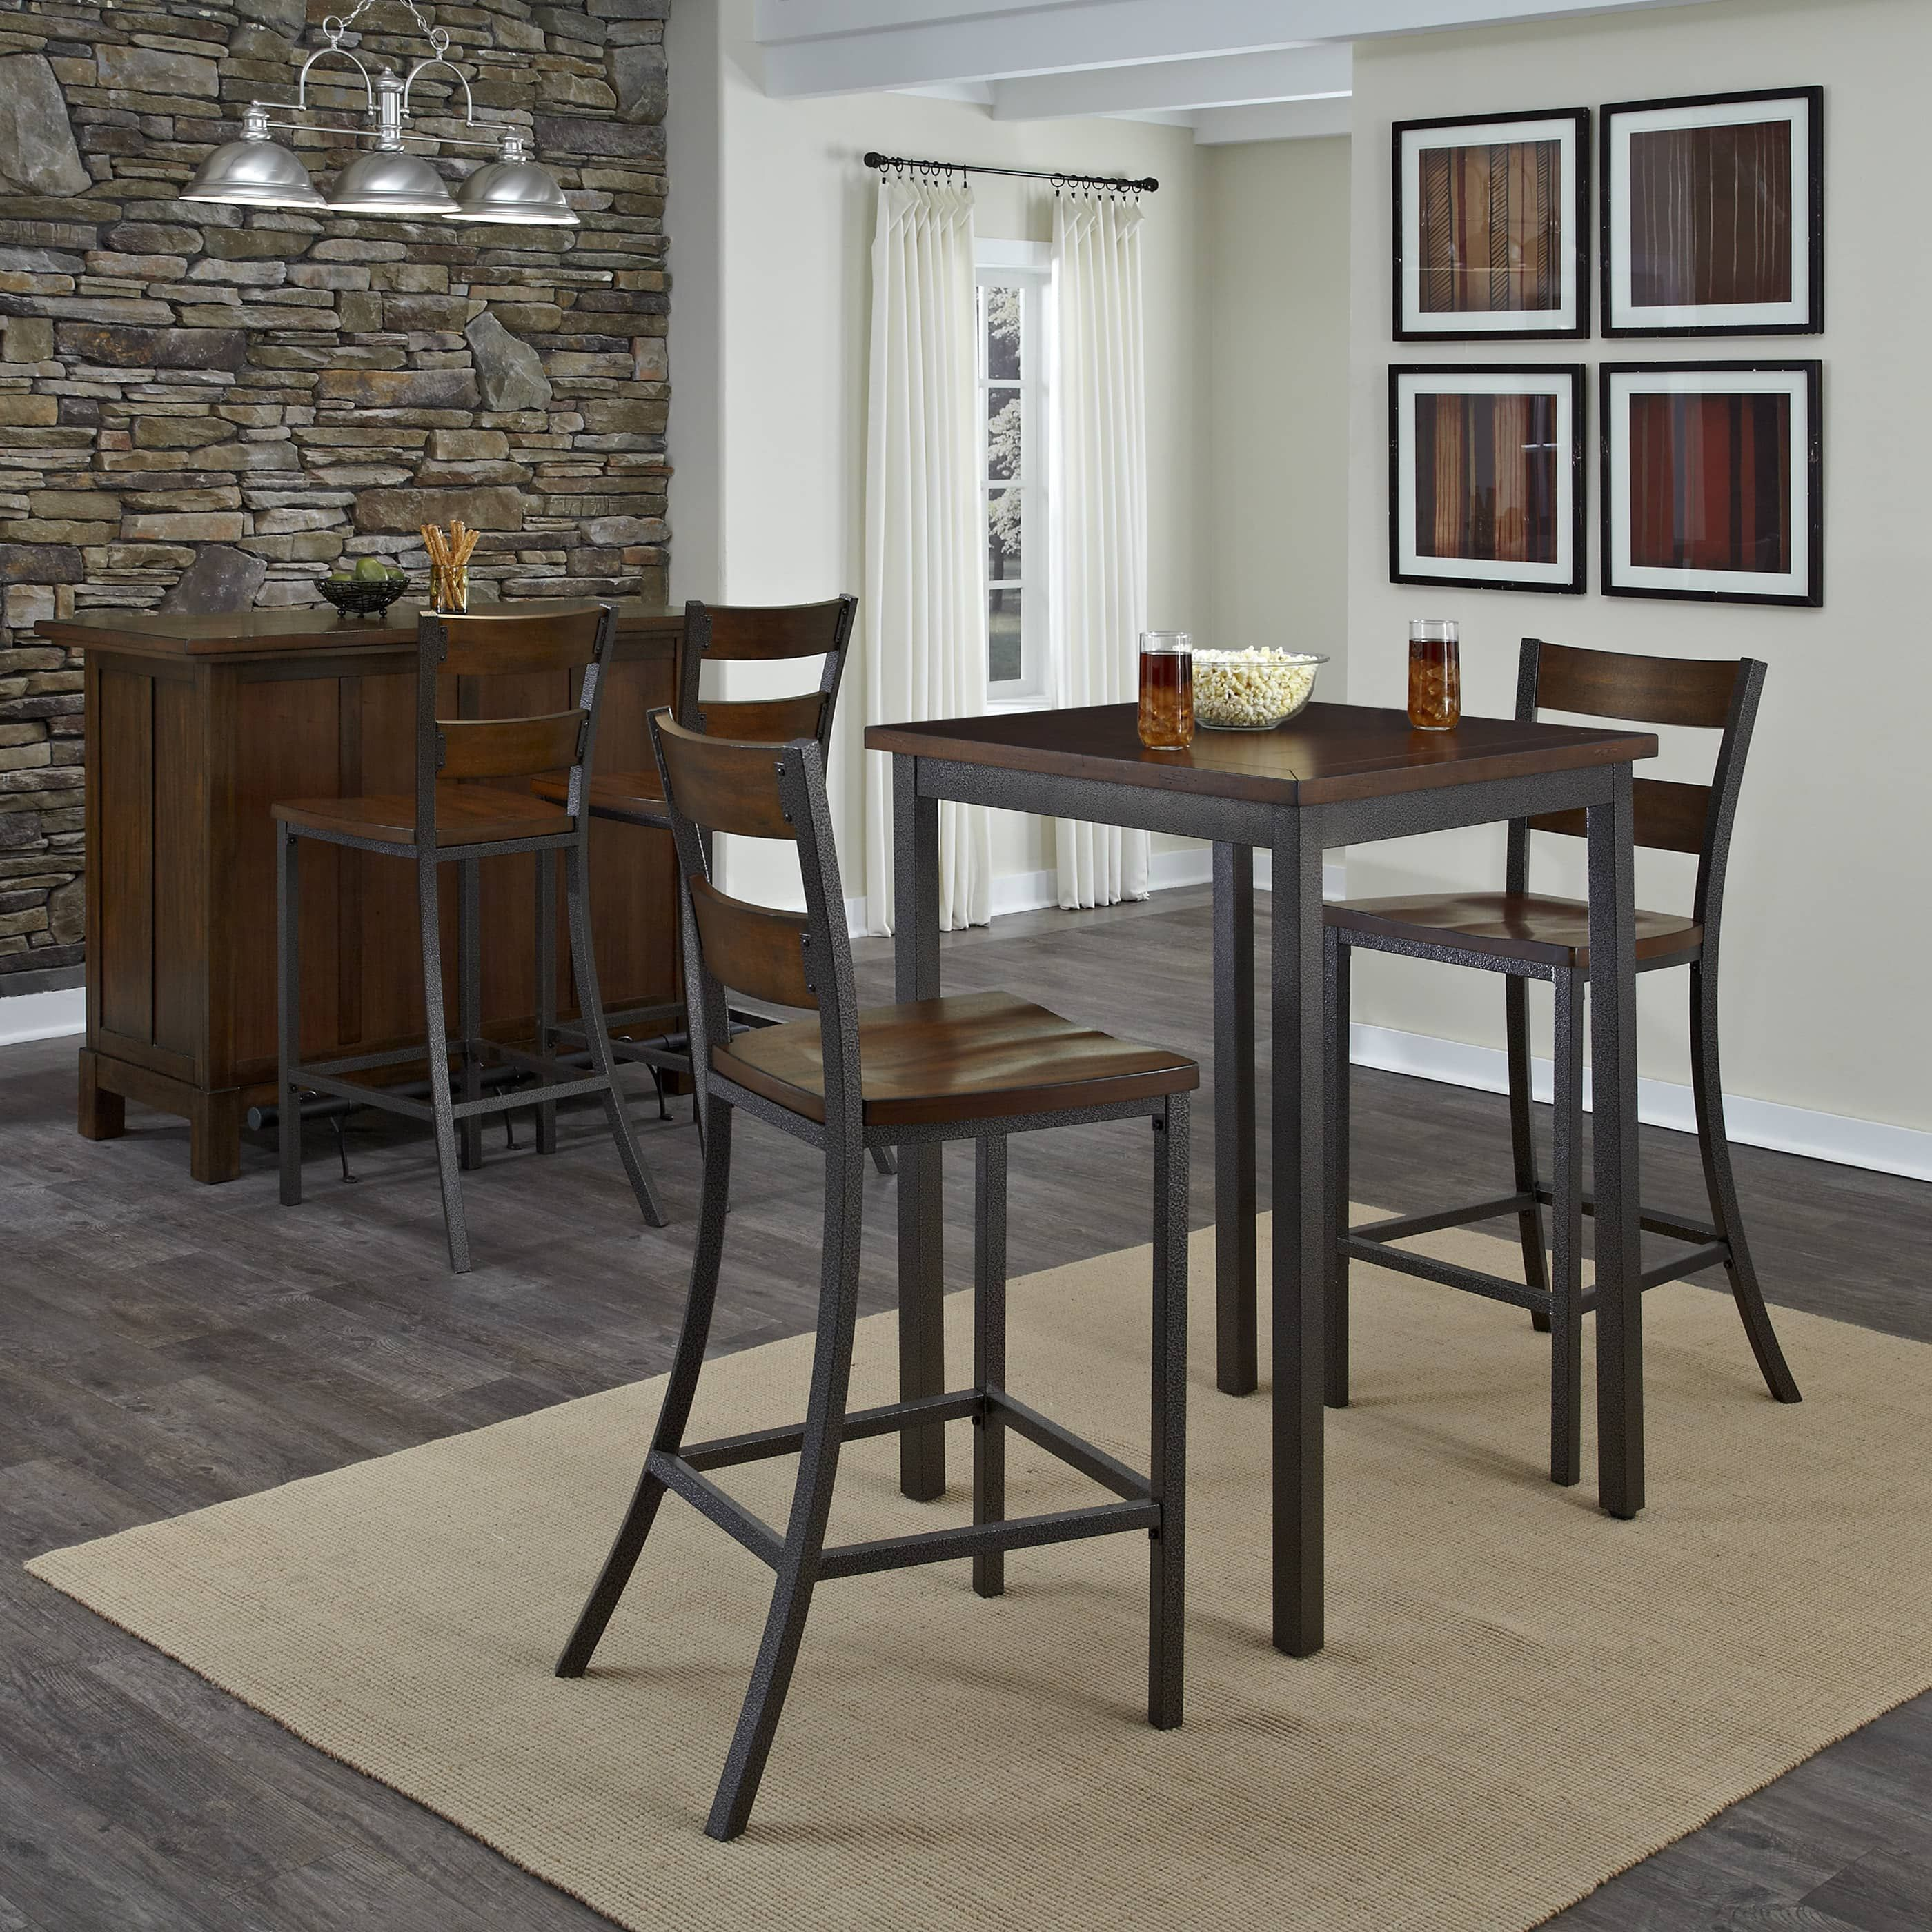 cabin creek 3 piece bistro set by home styles overstock com shopping the best deals on pub sets